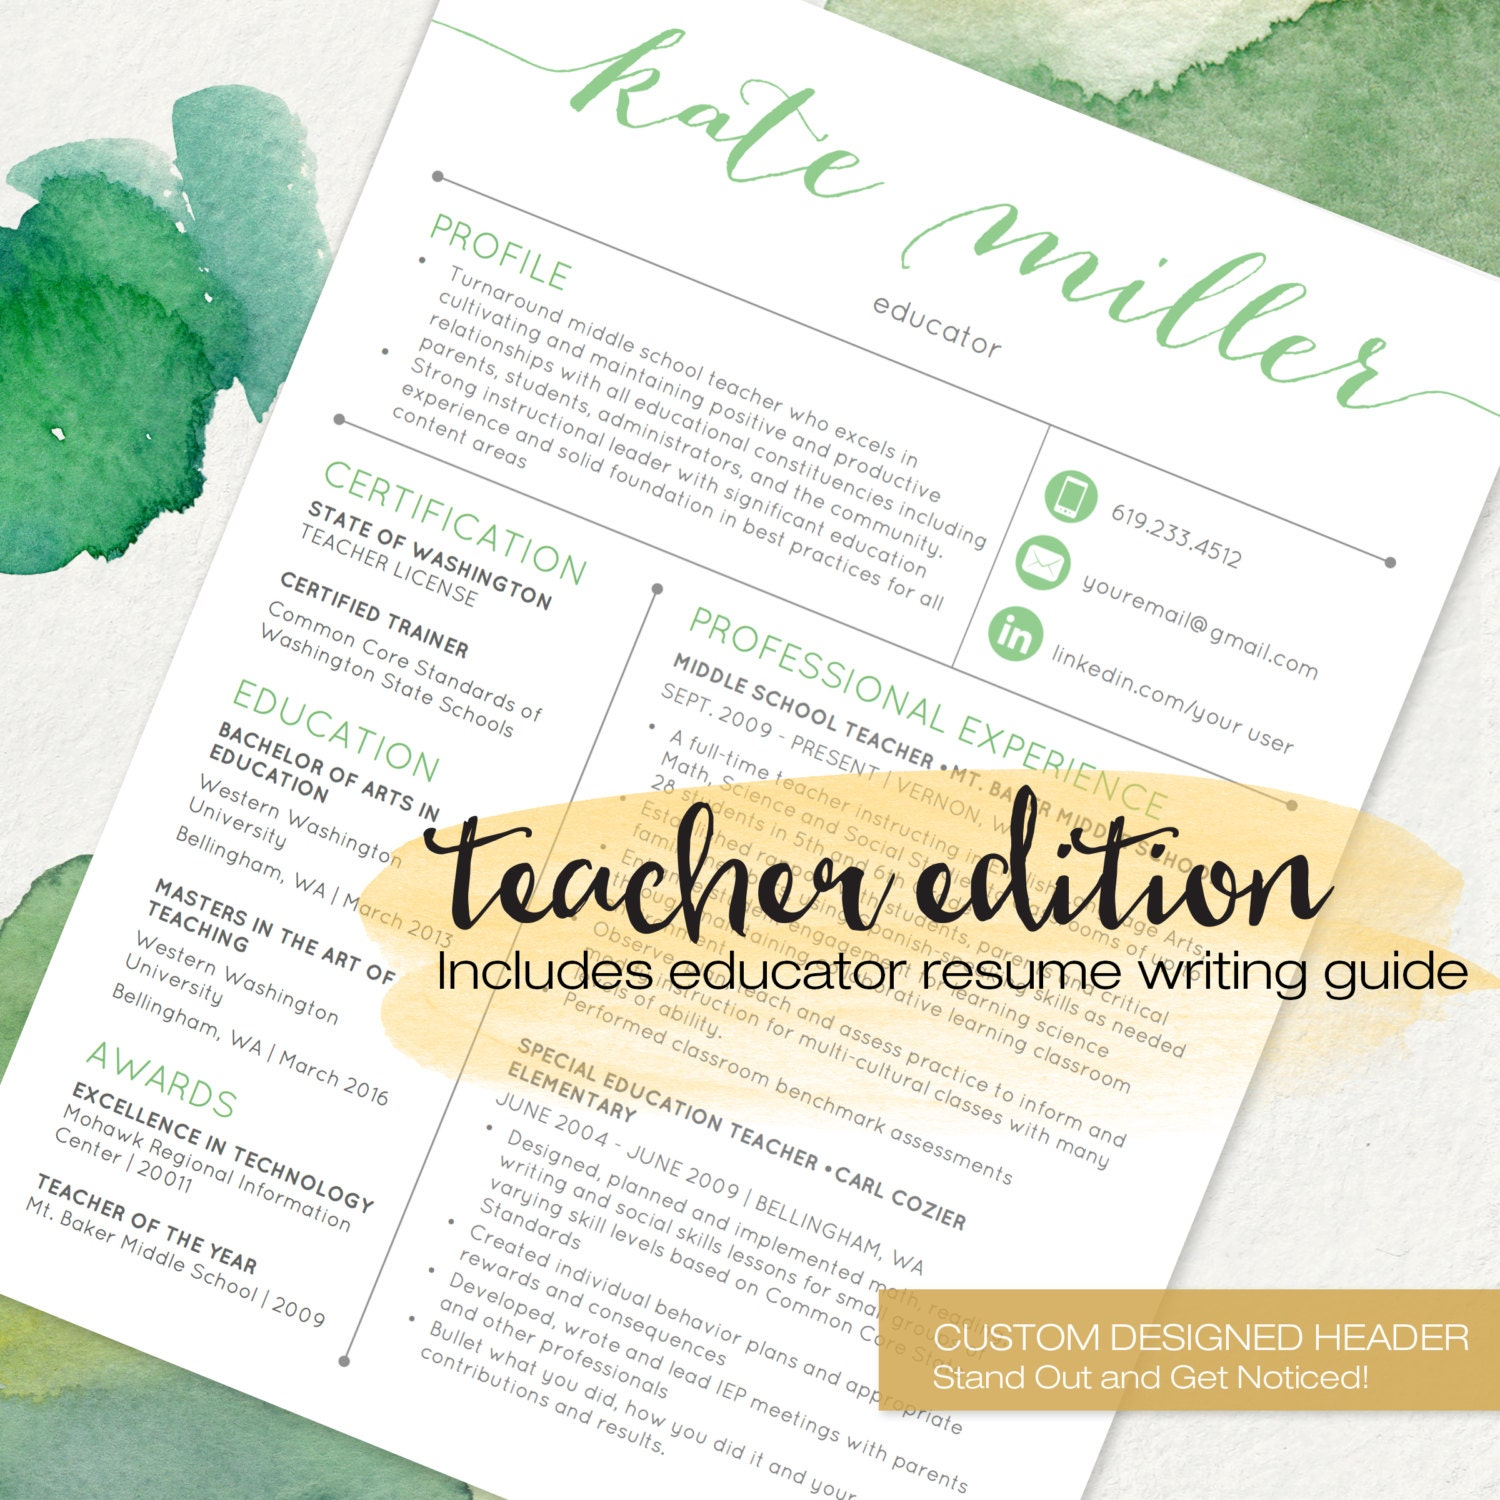 TEACHER Resume Template for MS Word   1 and 2 Page Resume, Cover Letter,  Reference Letter & Educator Resume Writing Guide   Custom Header